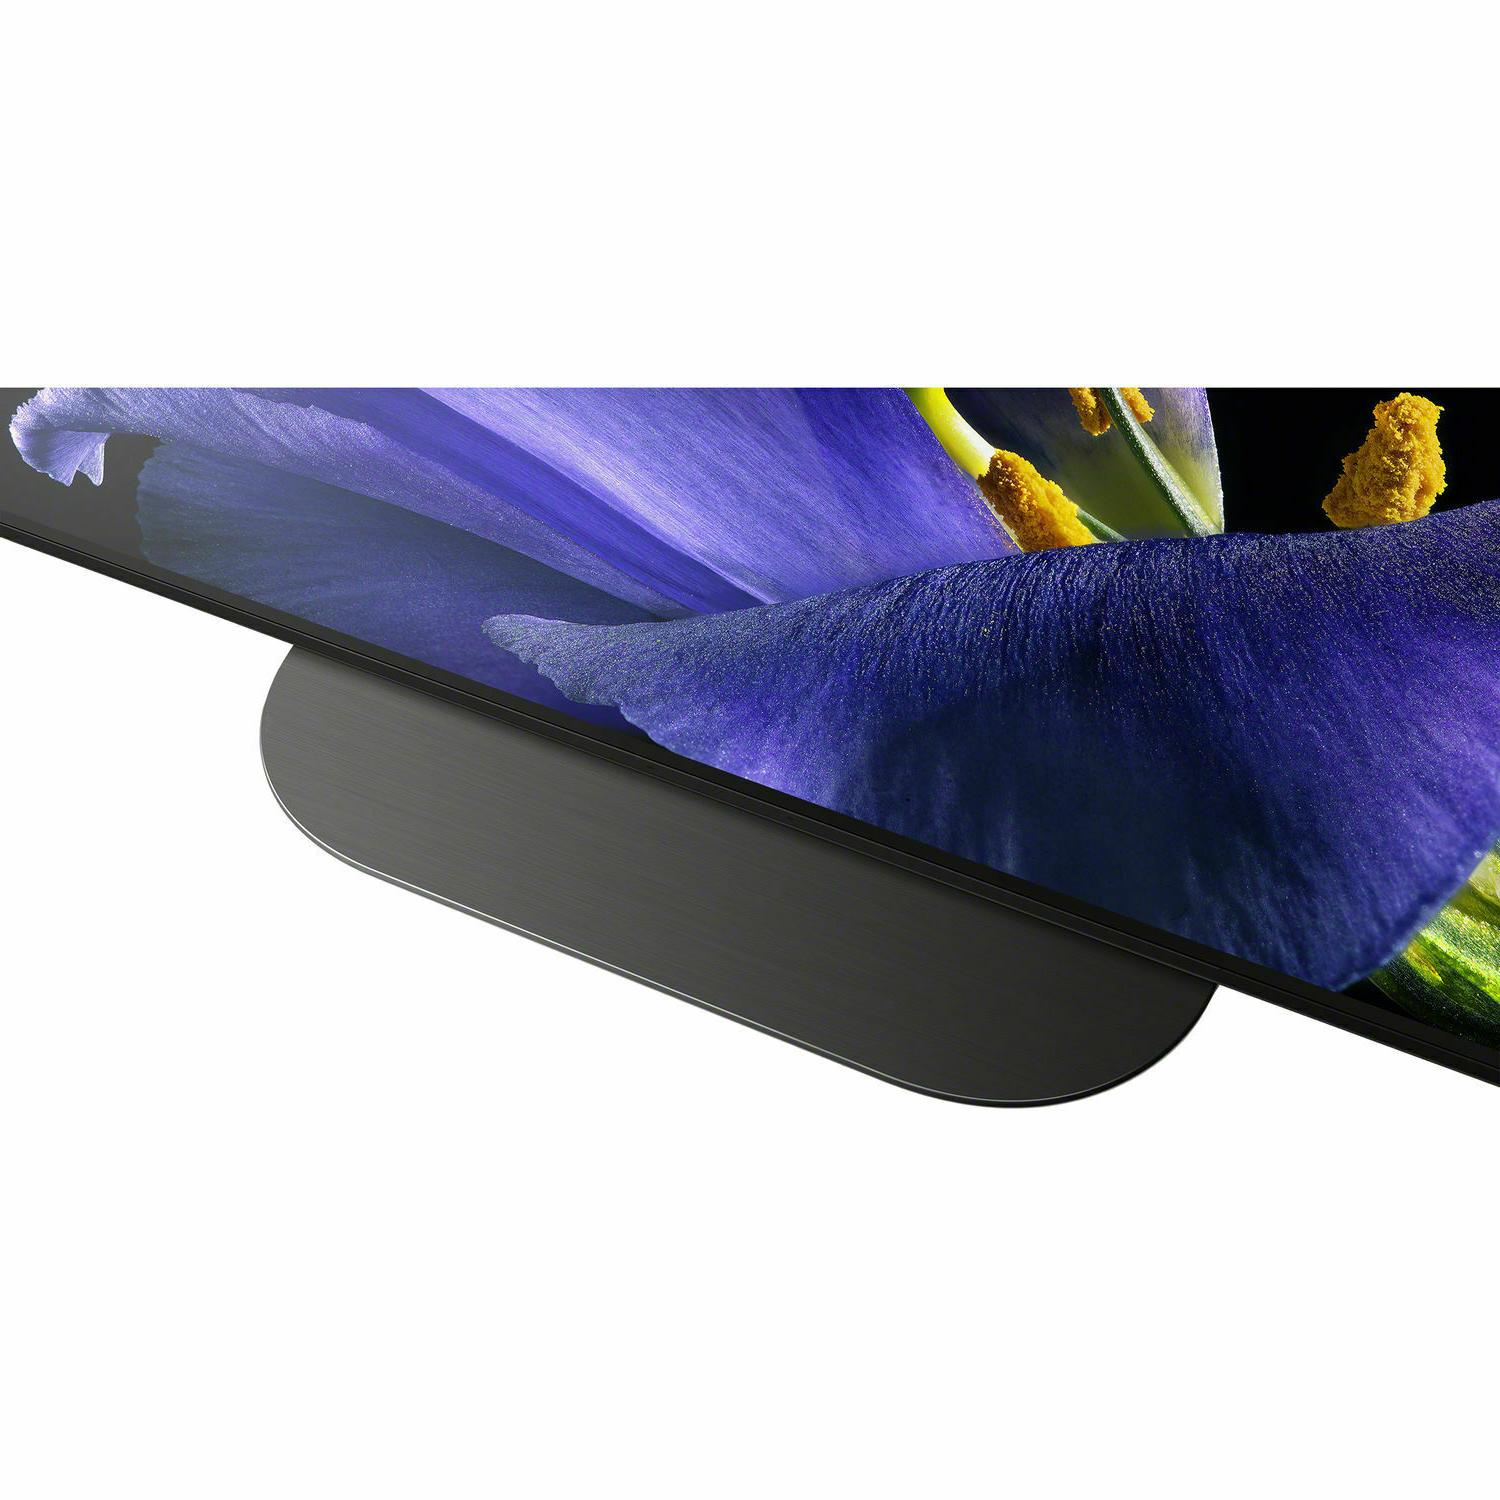 Sony MASTER OLED Ultra HDR TV - XBR65A9G